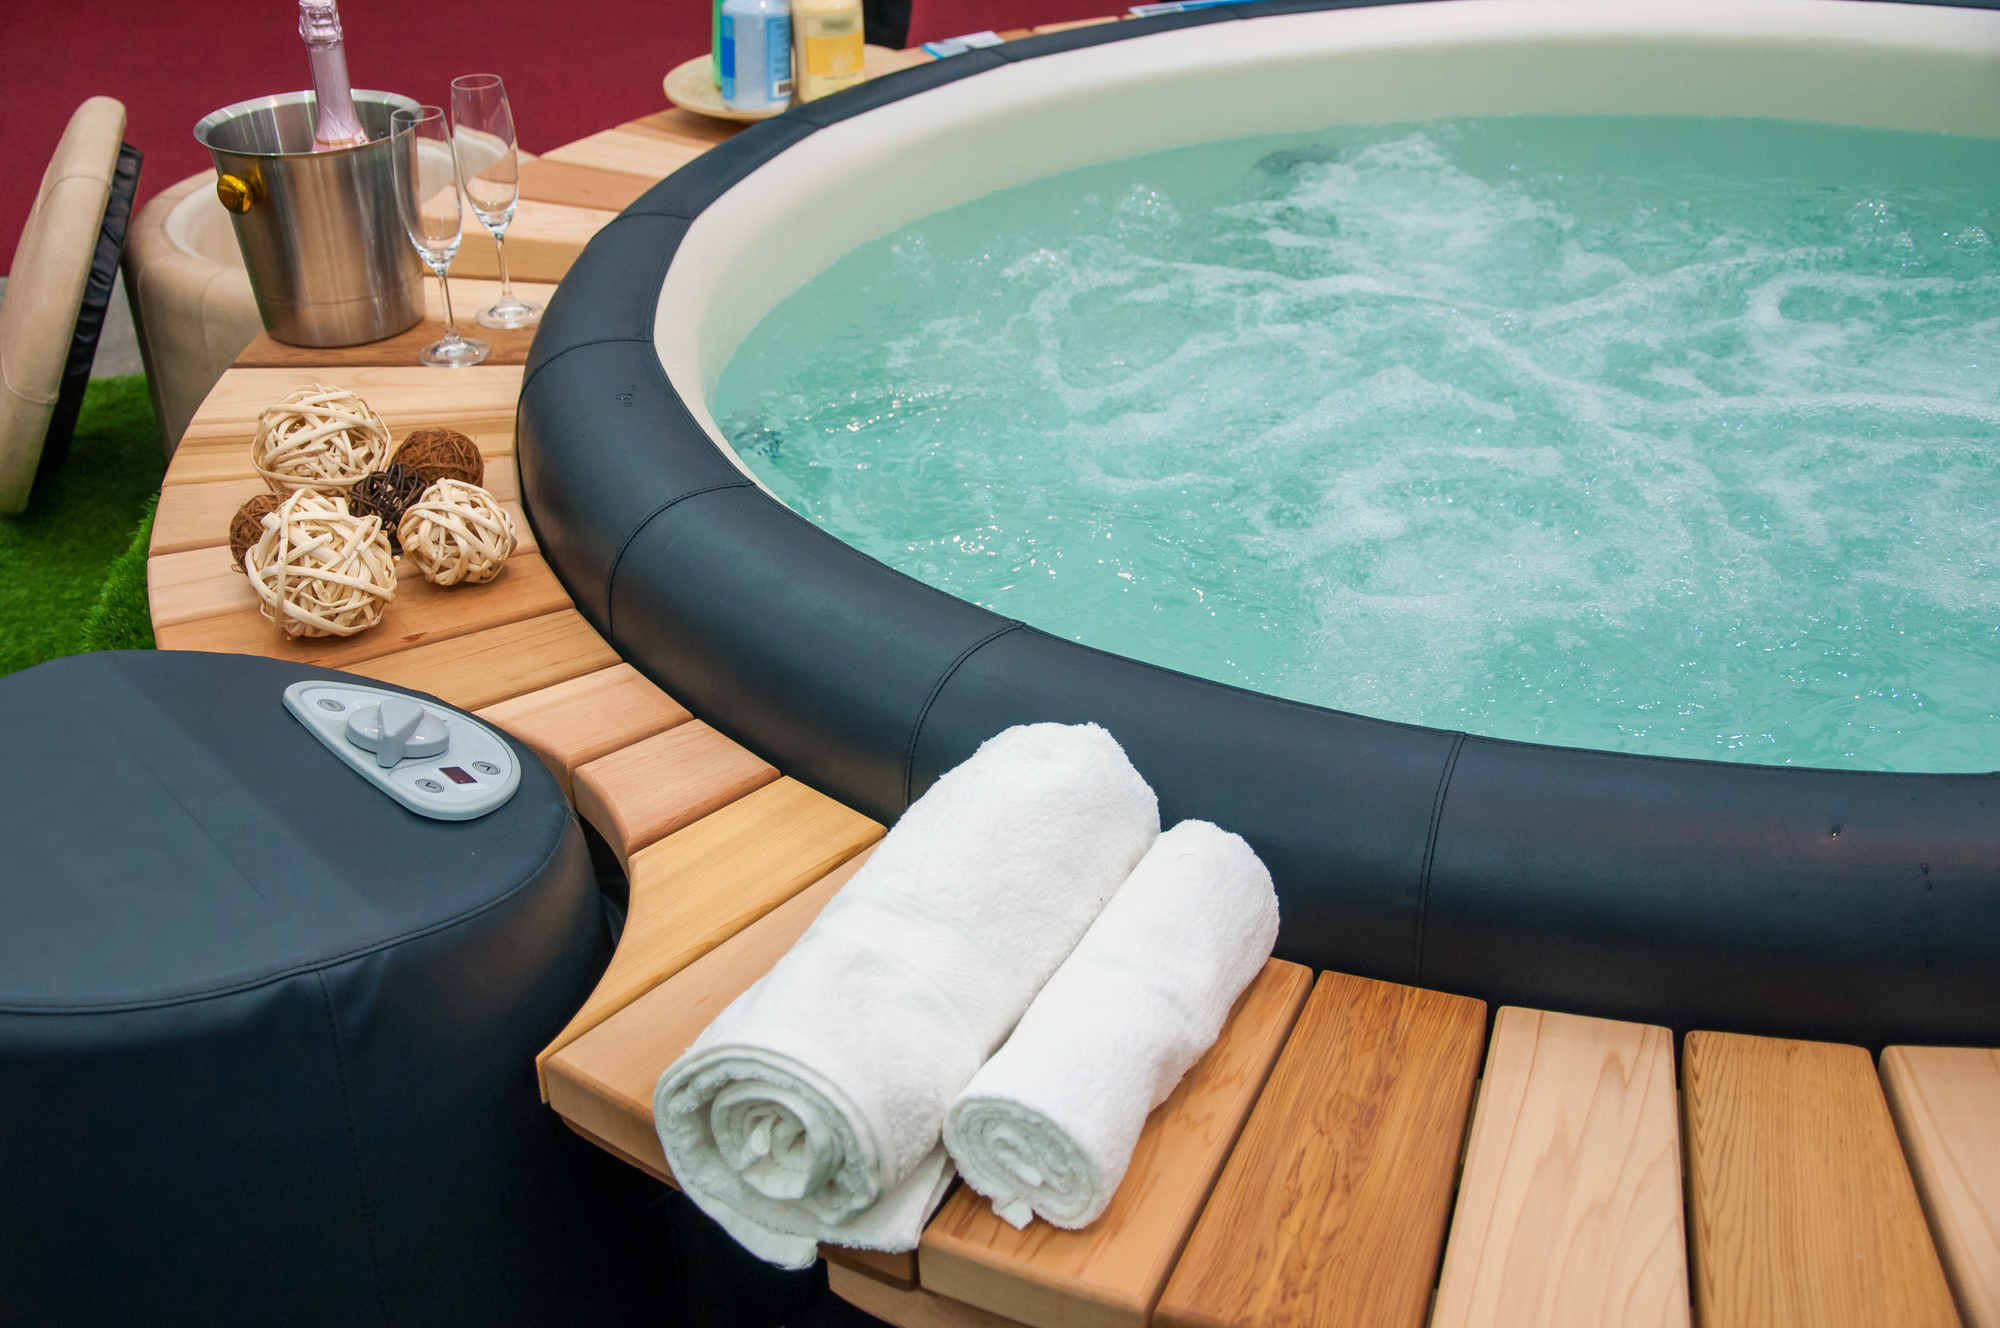 5 Unique Hot Tub Health Benefits that Support Overall Wellness